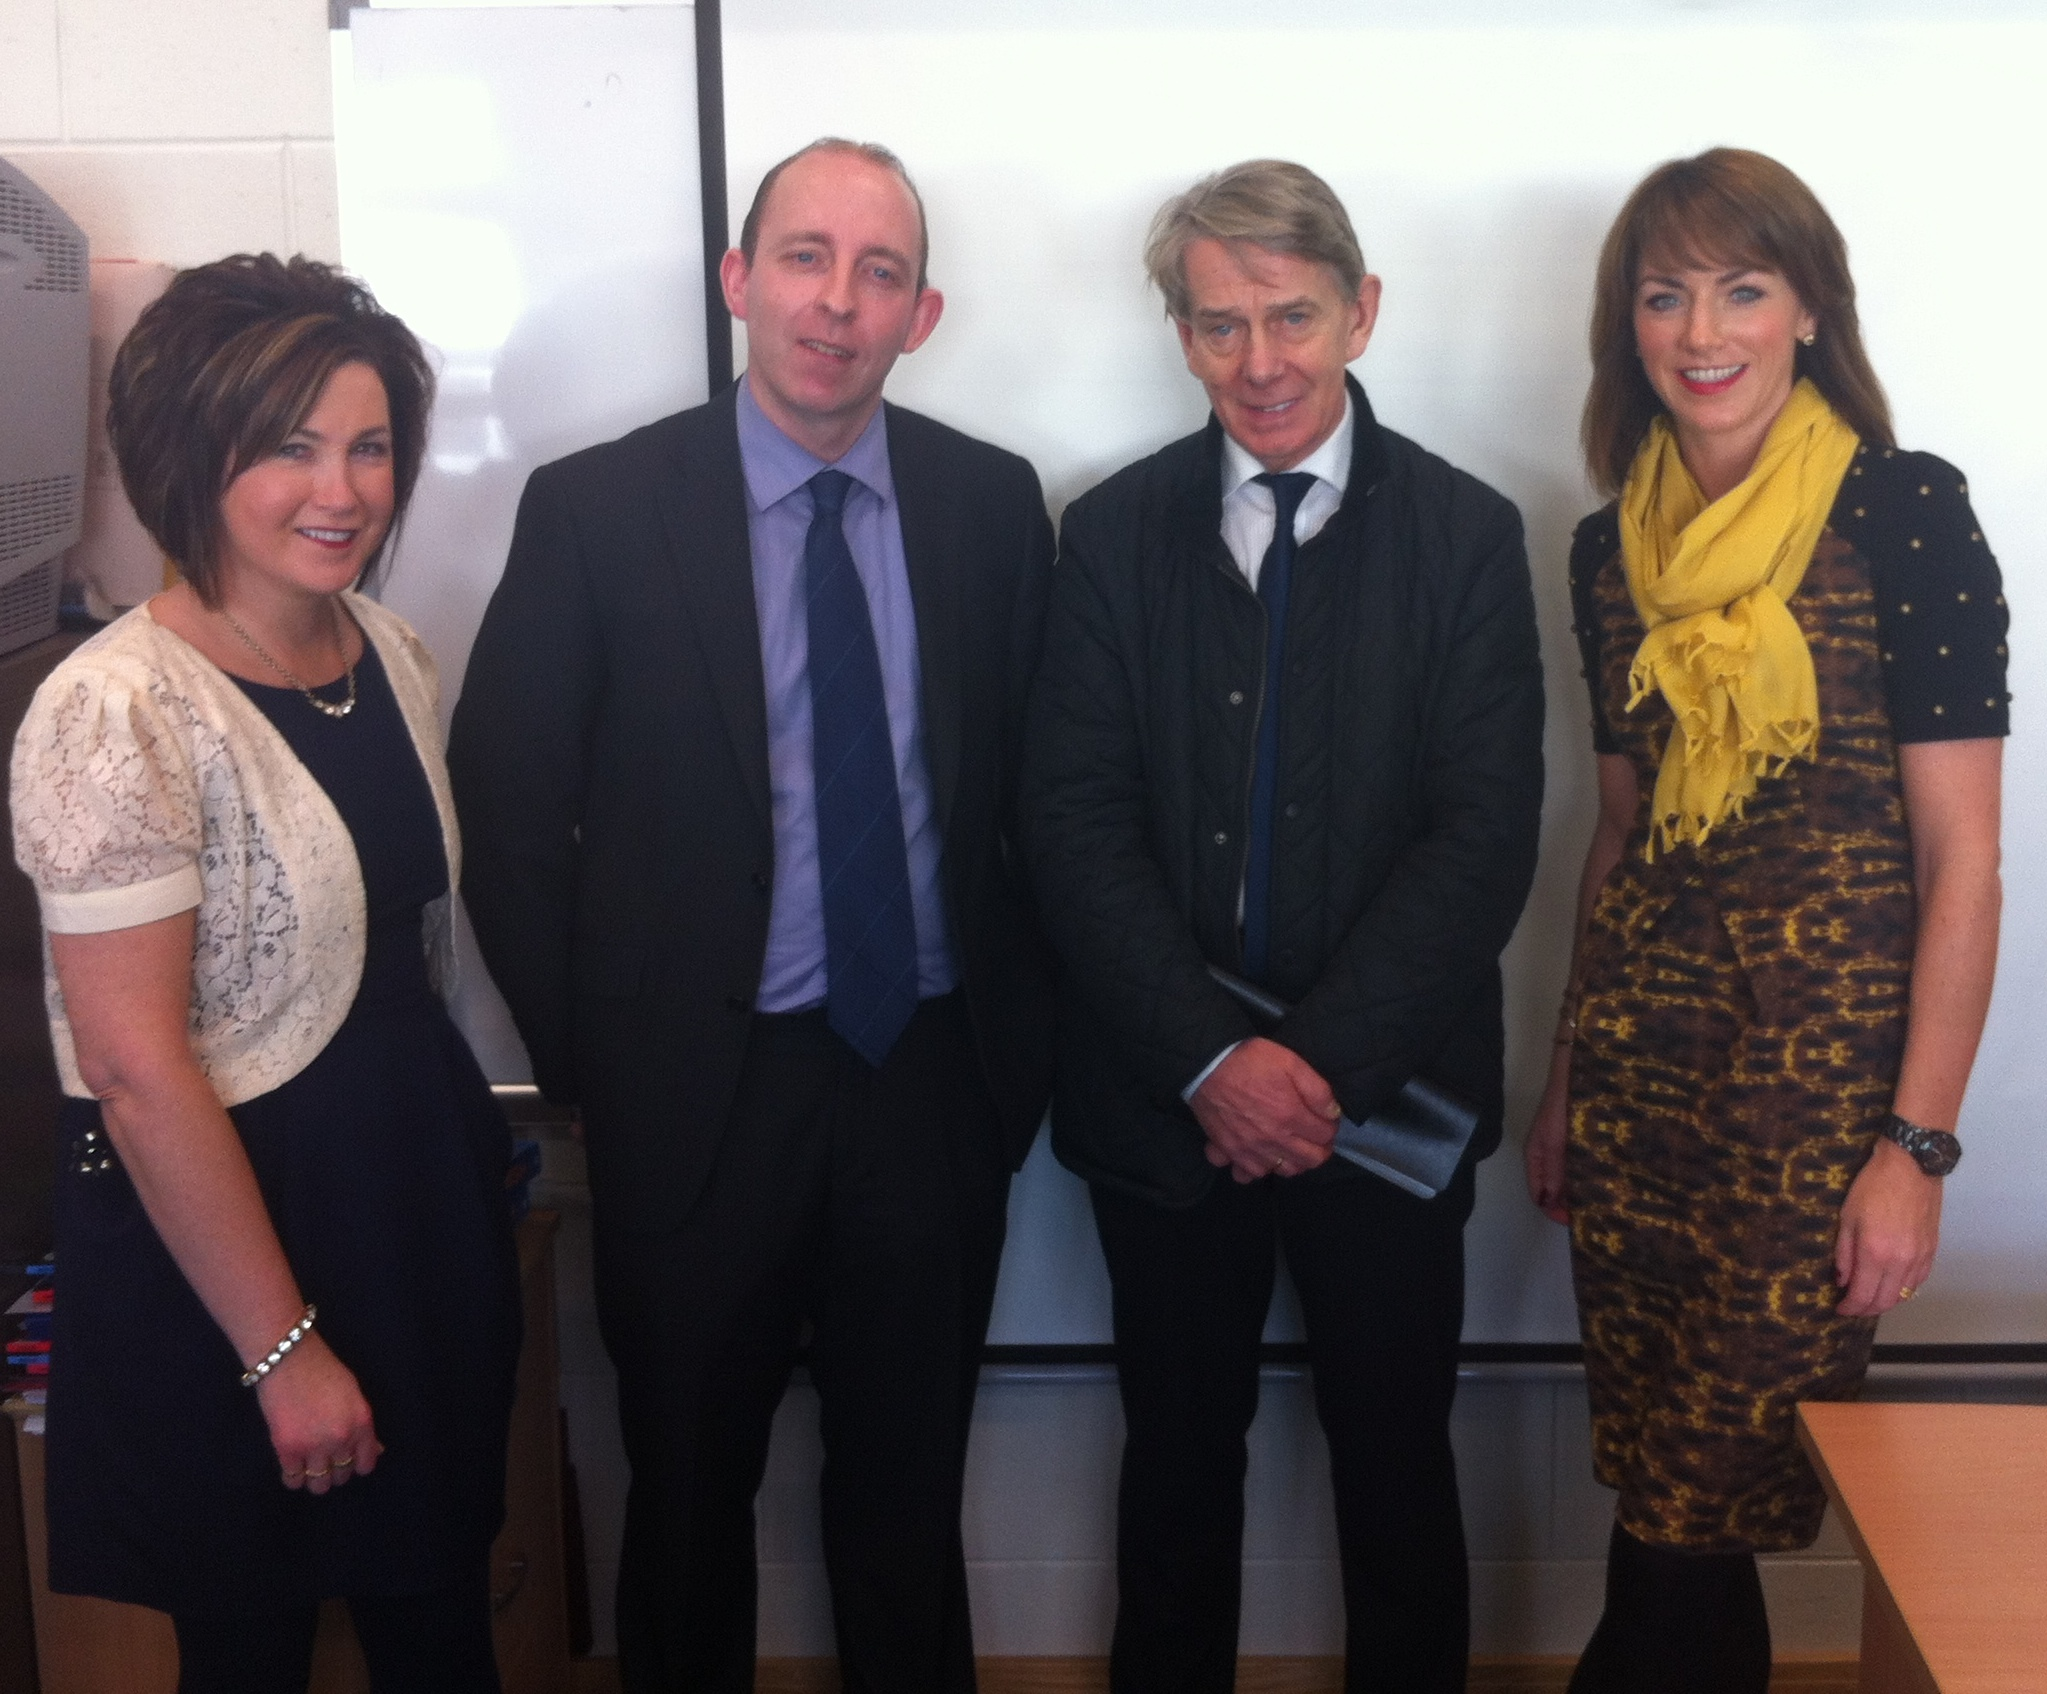 Owner of Mc Elhinney's Department Stores Mr John Mc Elhinney pictured with Mr. Thompson, Principal, Ms Boland, Deputy Principal and Ms Mc Geehan.